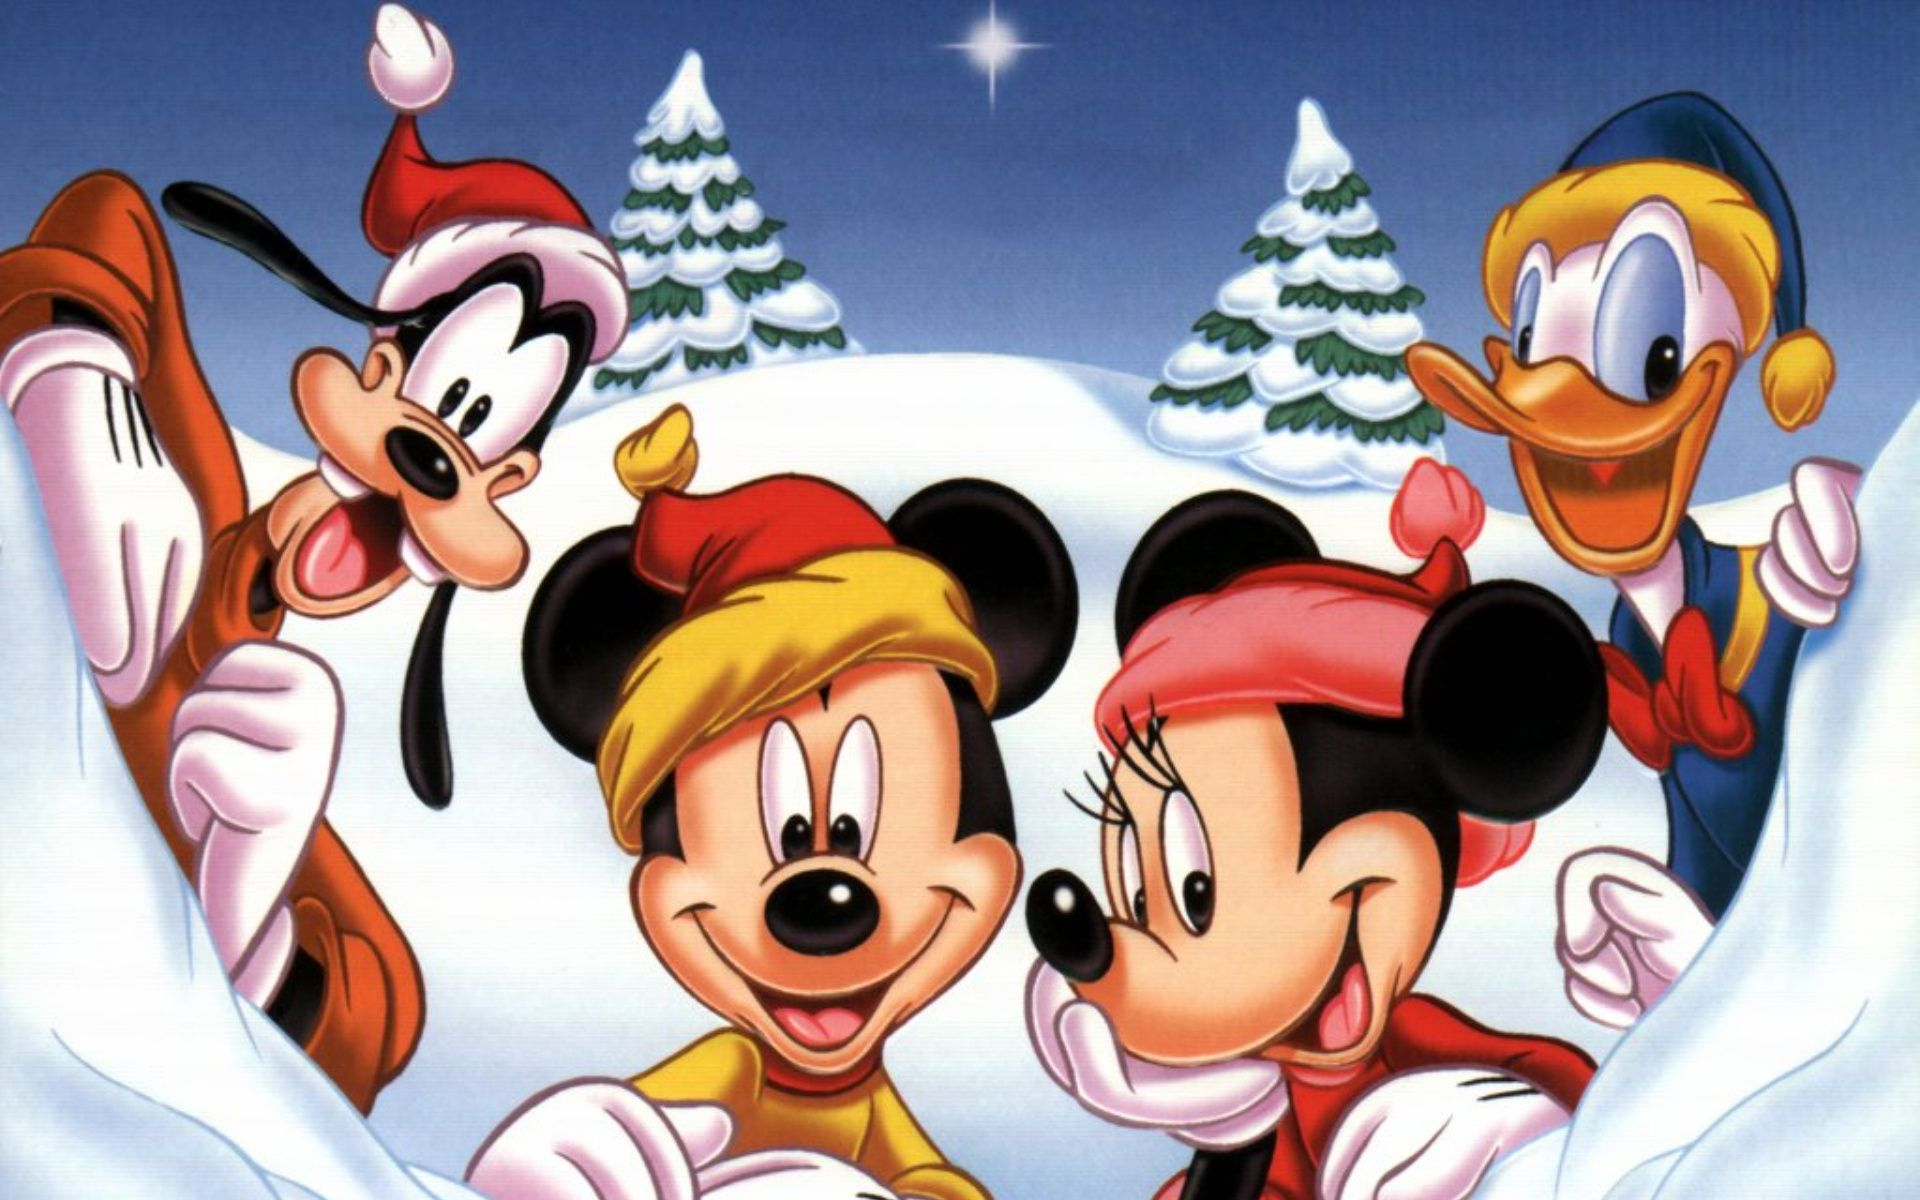 1920x1200 Wallpaper | New Year | photo | picture | Mickey Mouse, New ...